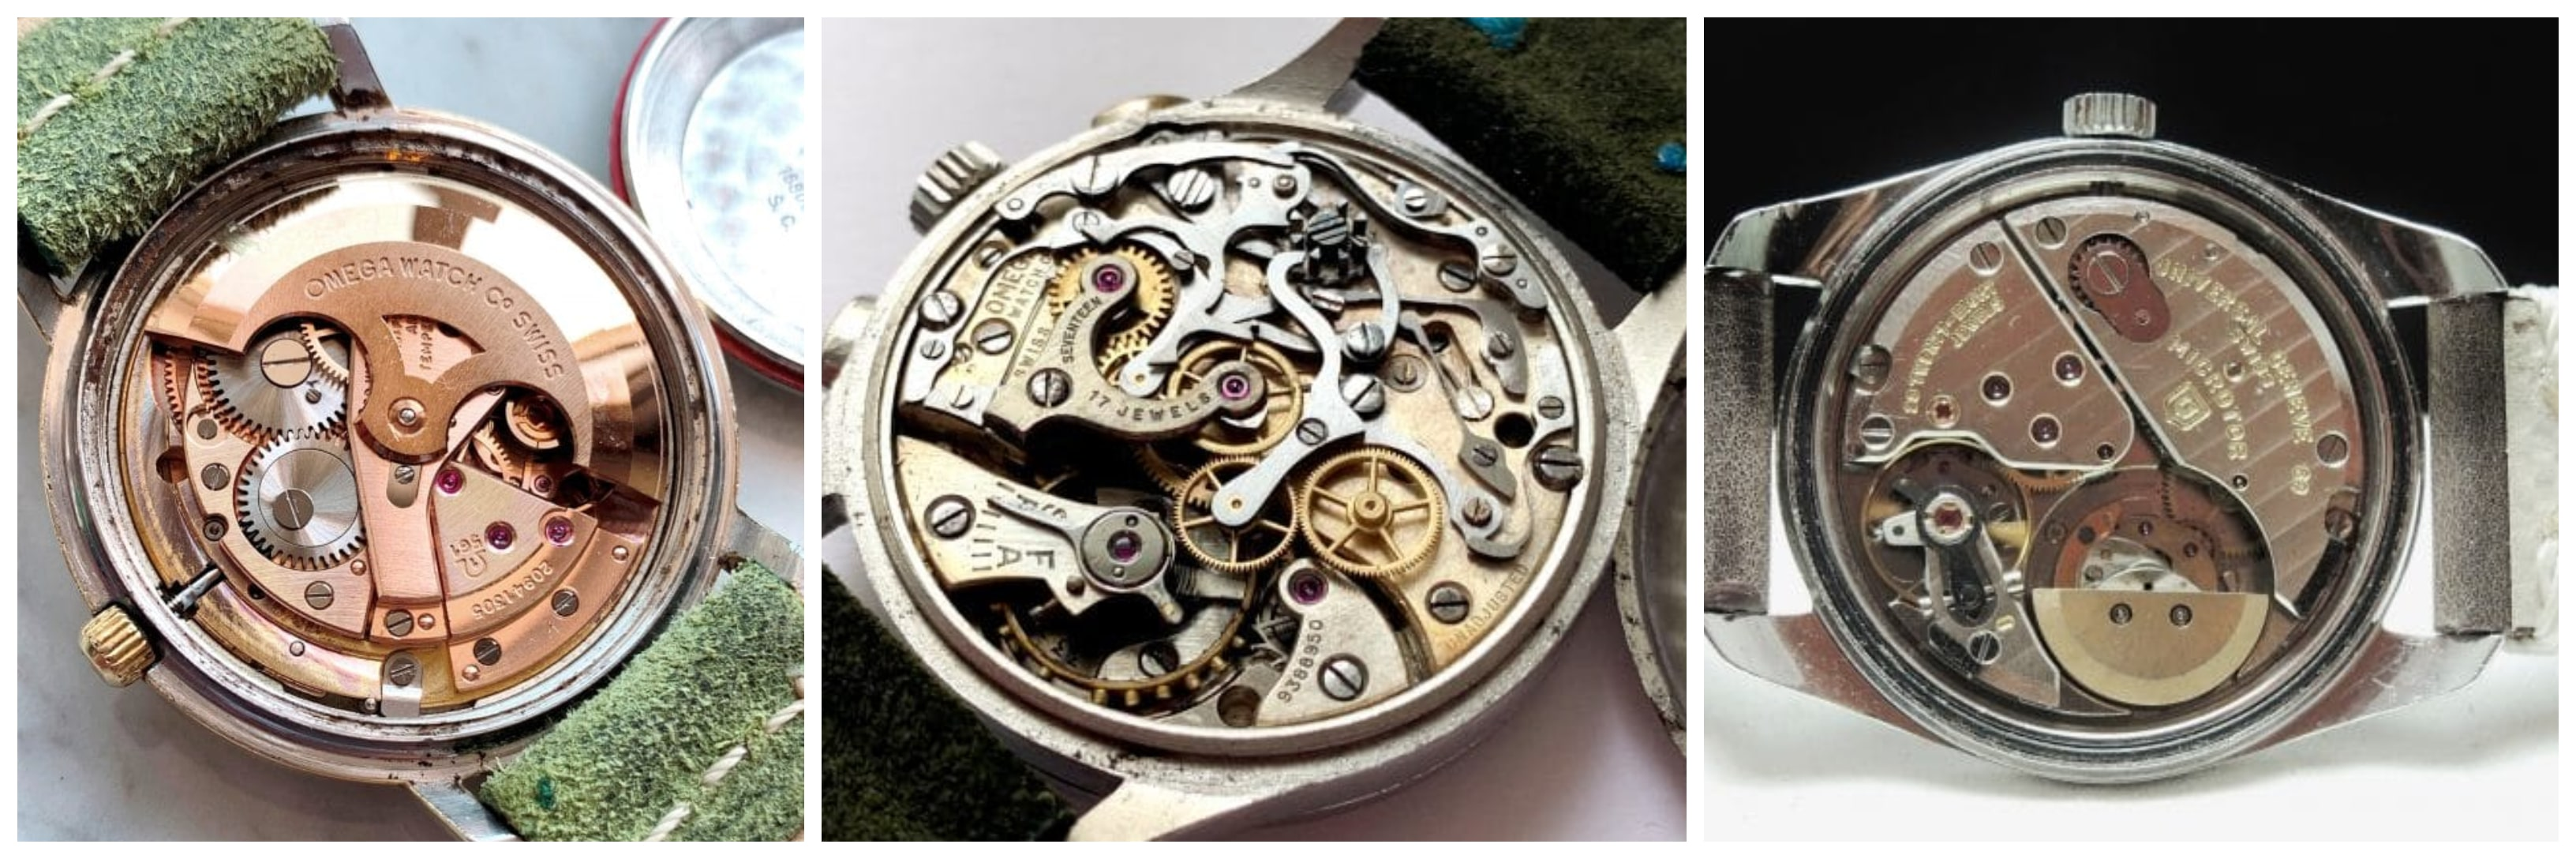 The Four Biggest Mistakes When Buying Vintage Watches